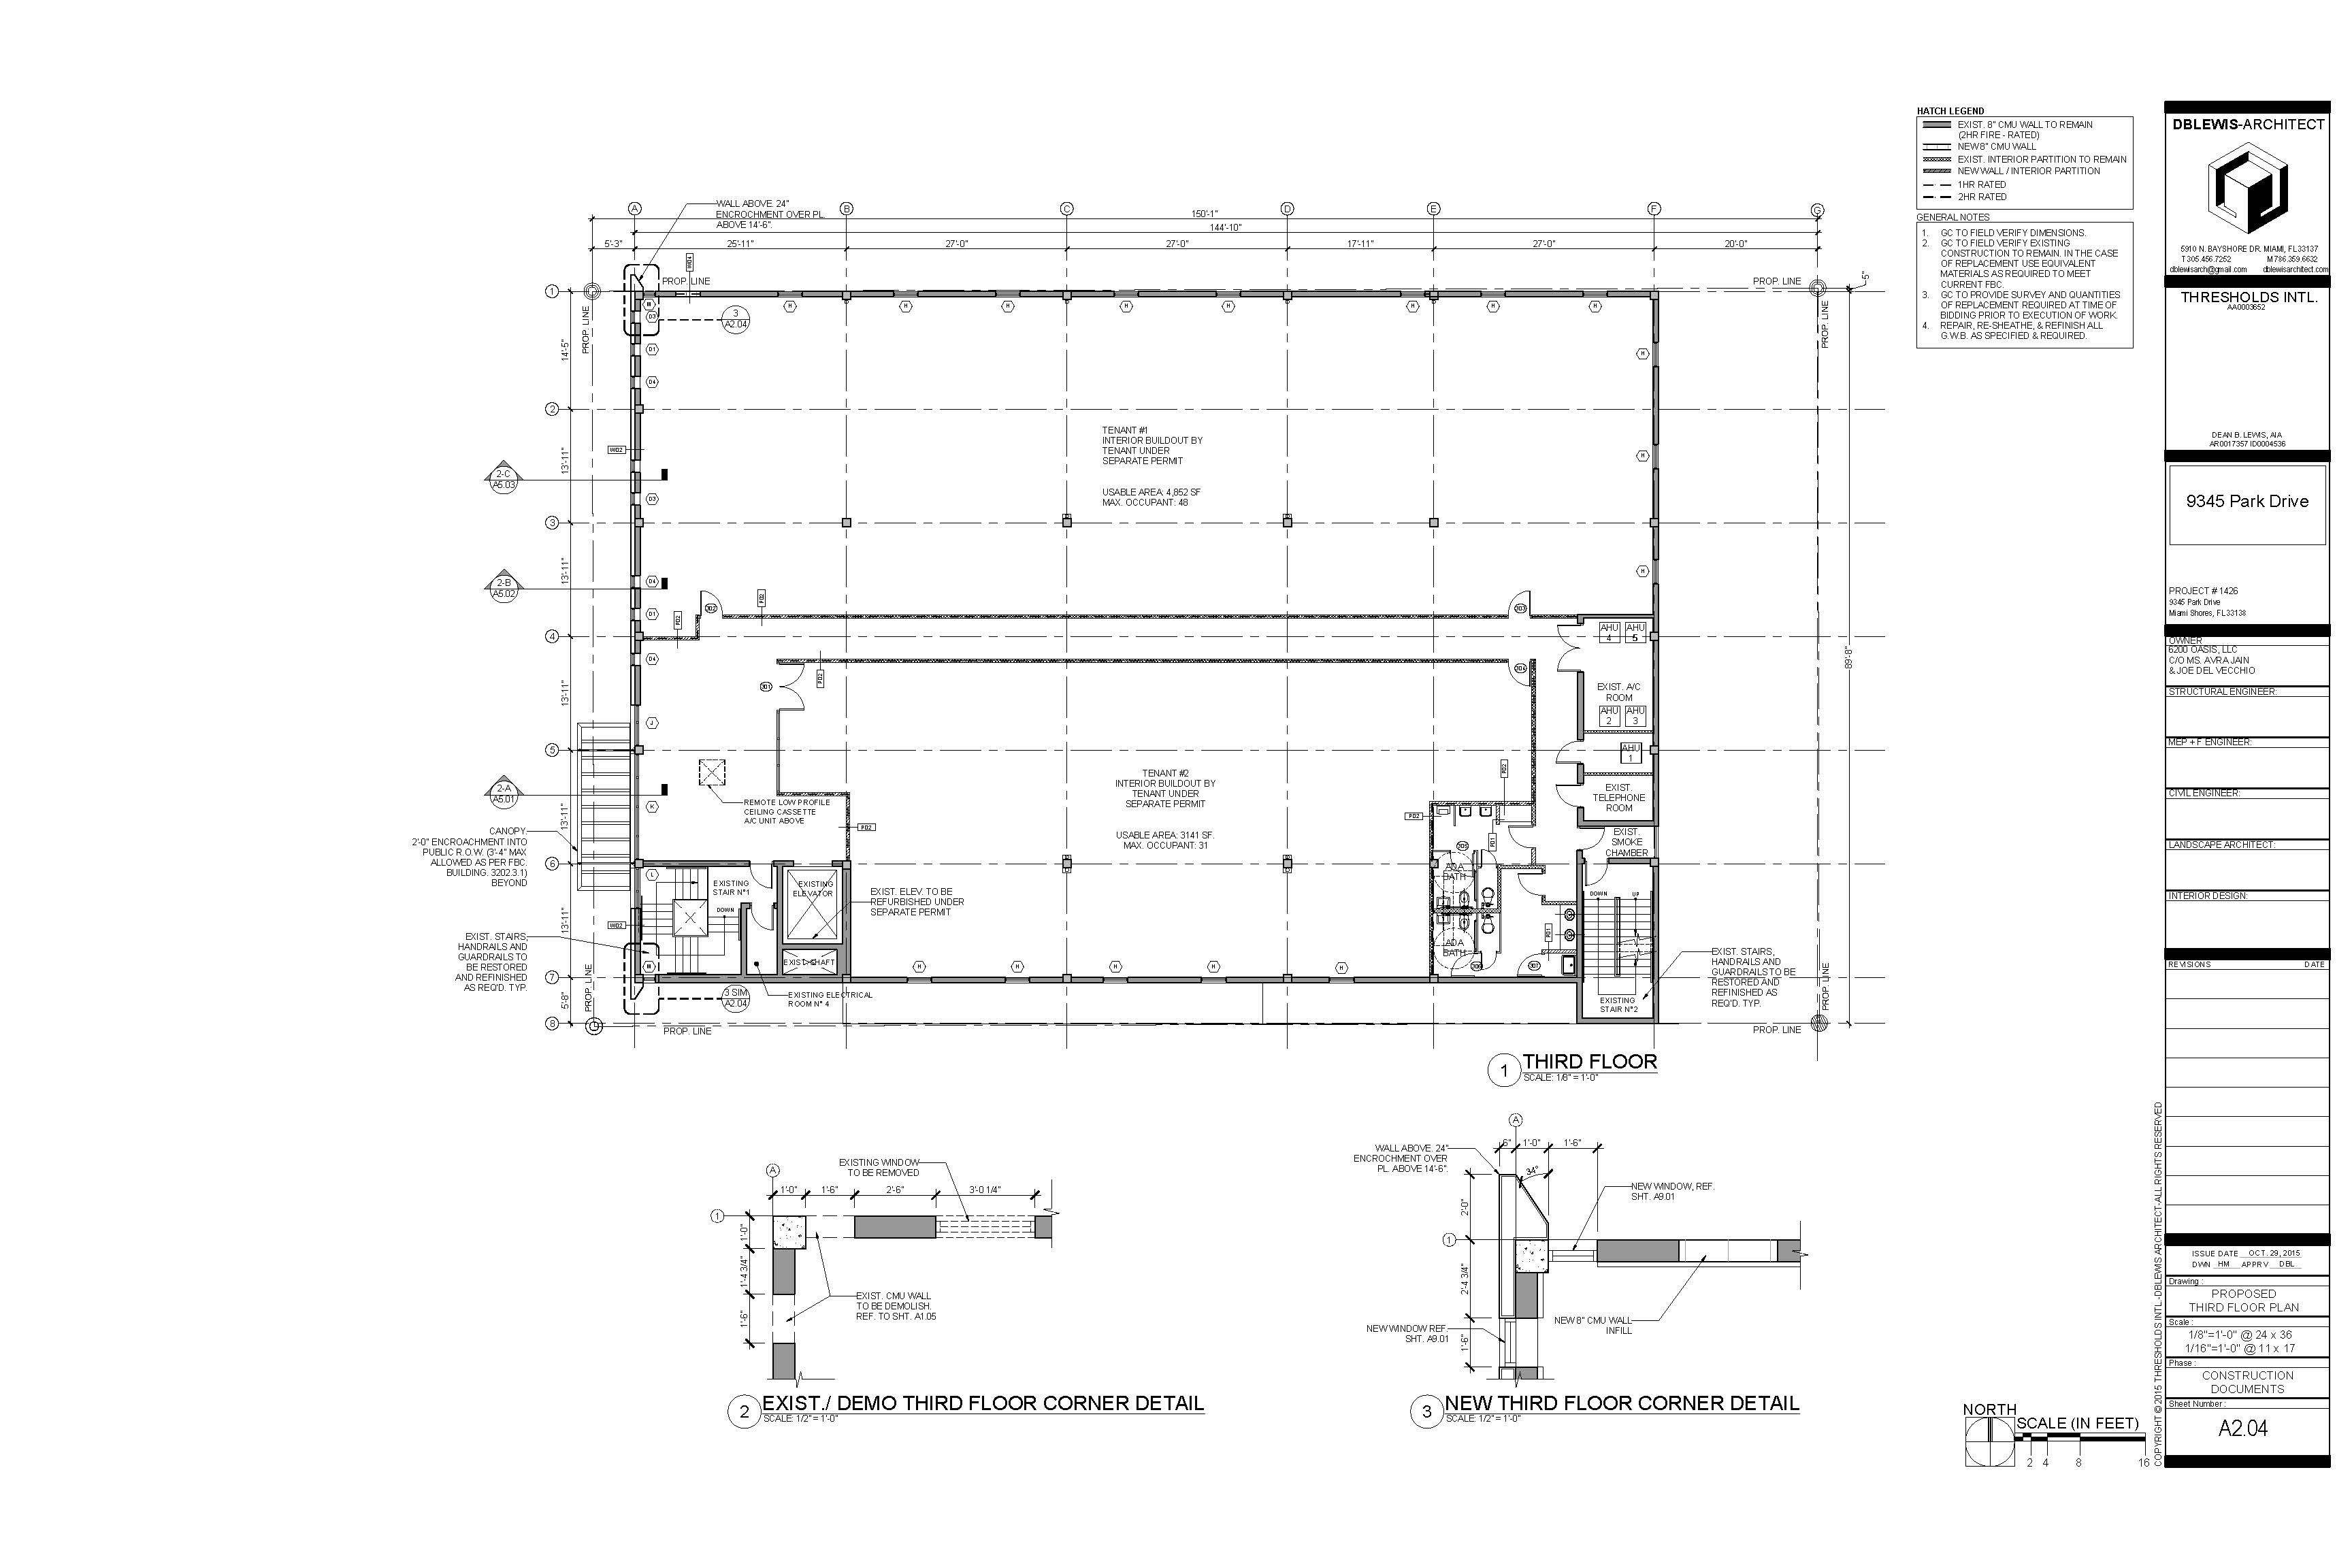 Park Drive. Proposed third floor plan